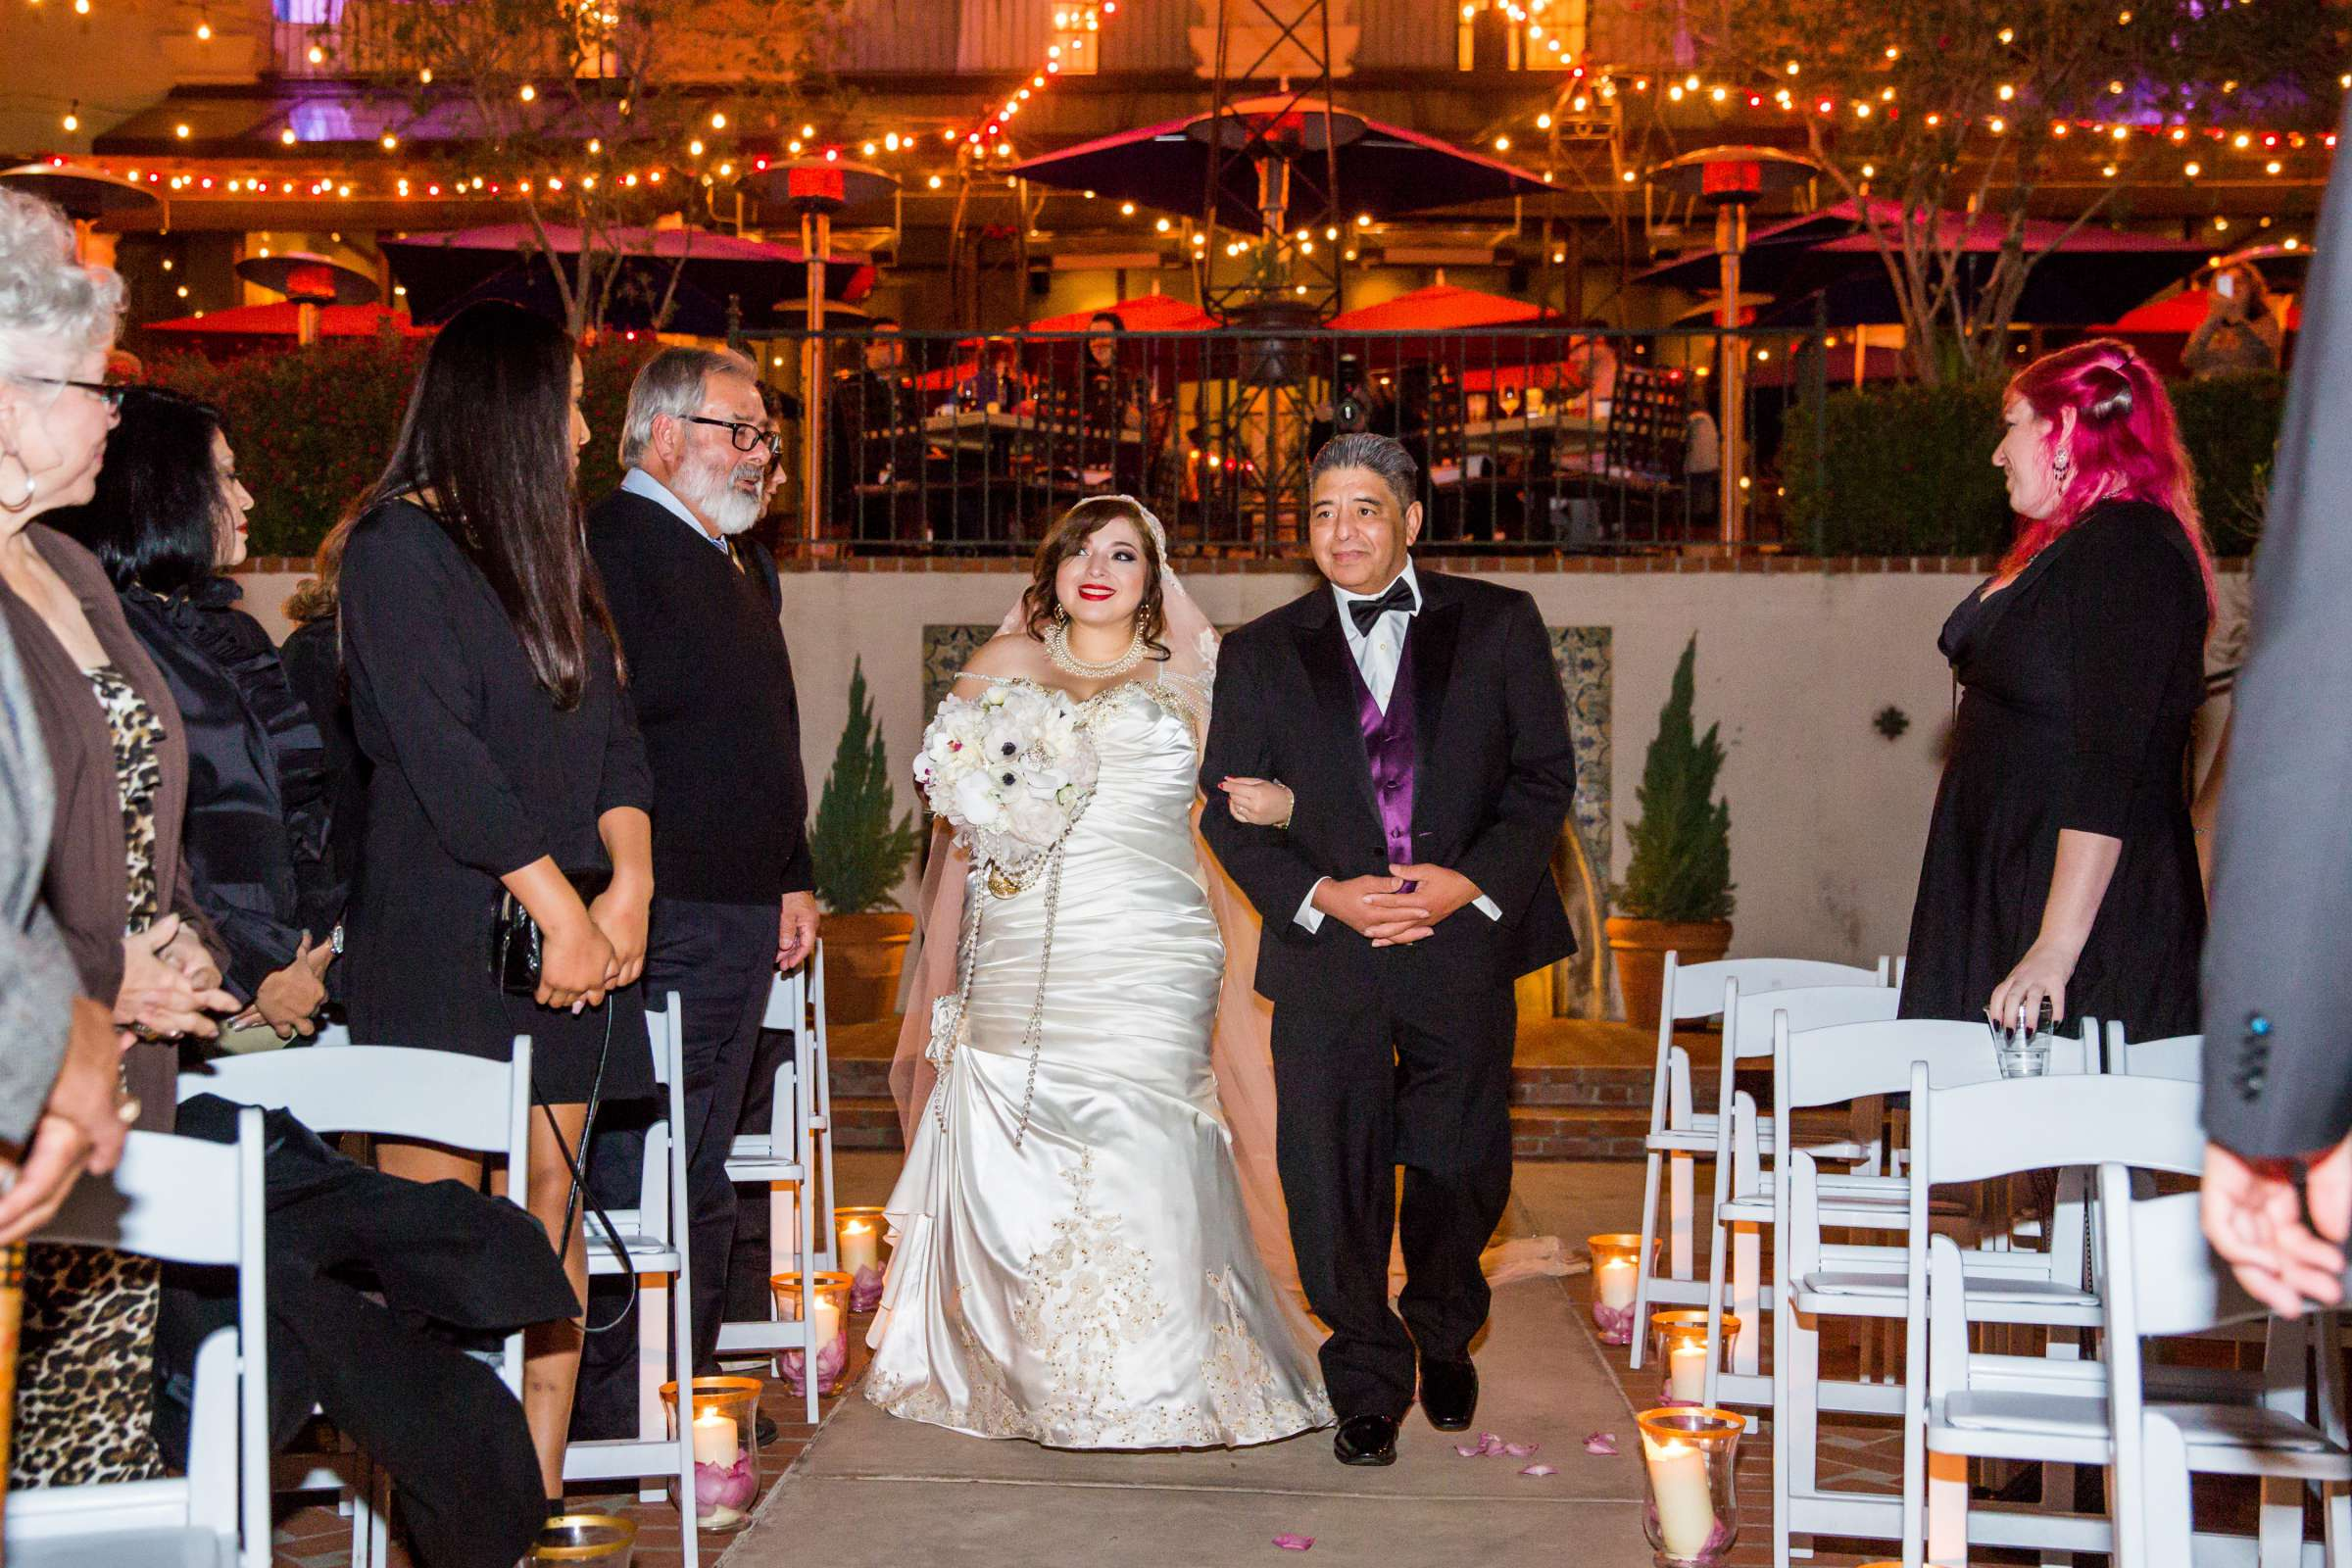 The Prado Wedding coordinated by Breezy Day Weddings, Aalis and Michael Wedding Photo #89 by True Photography